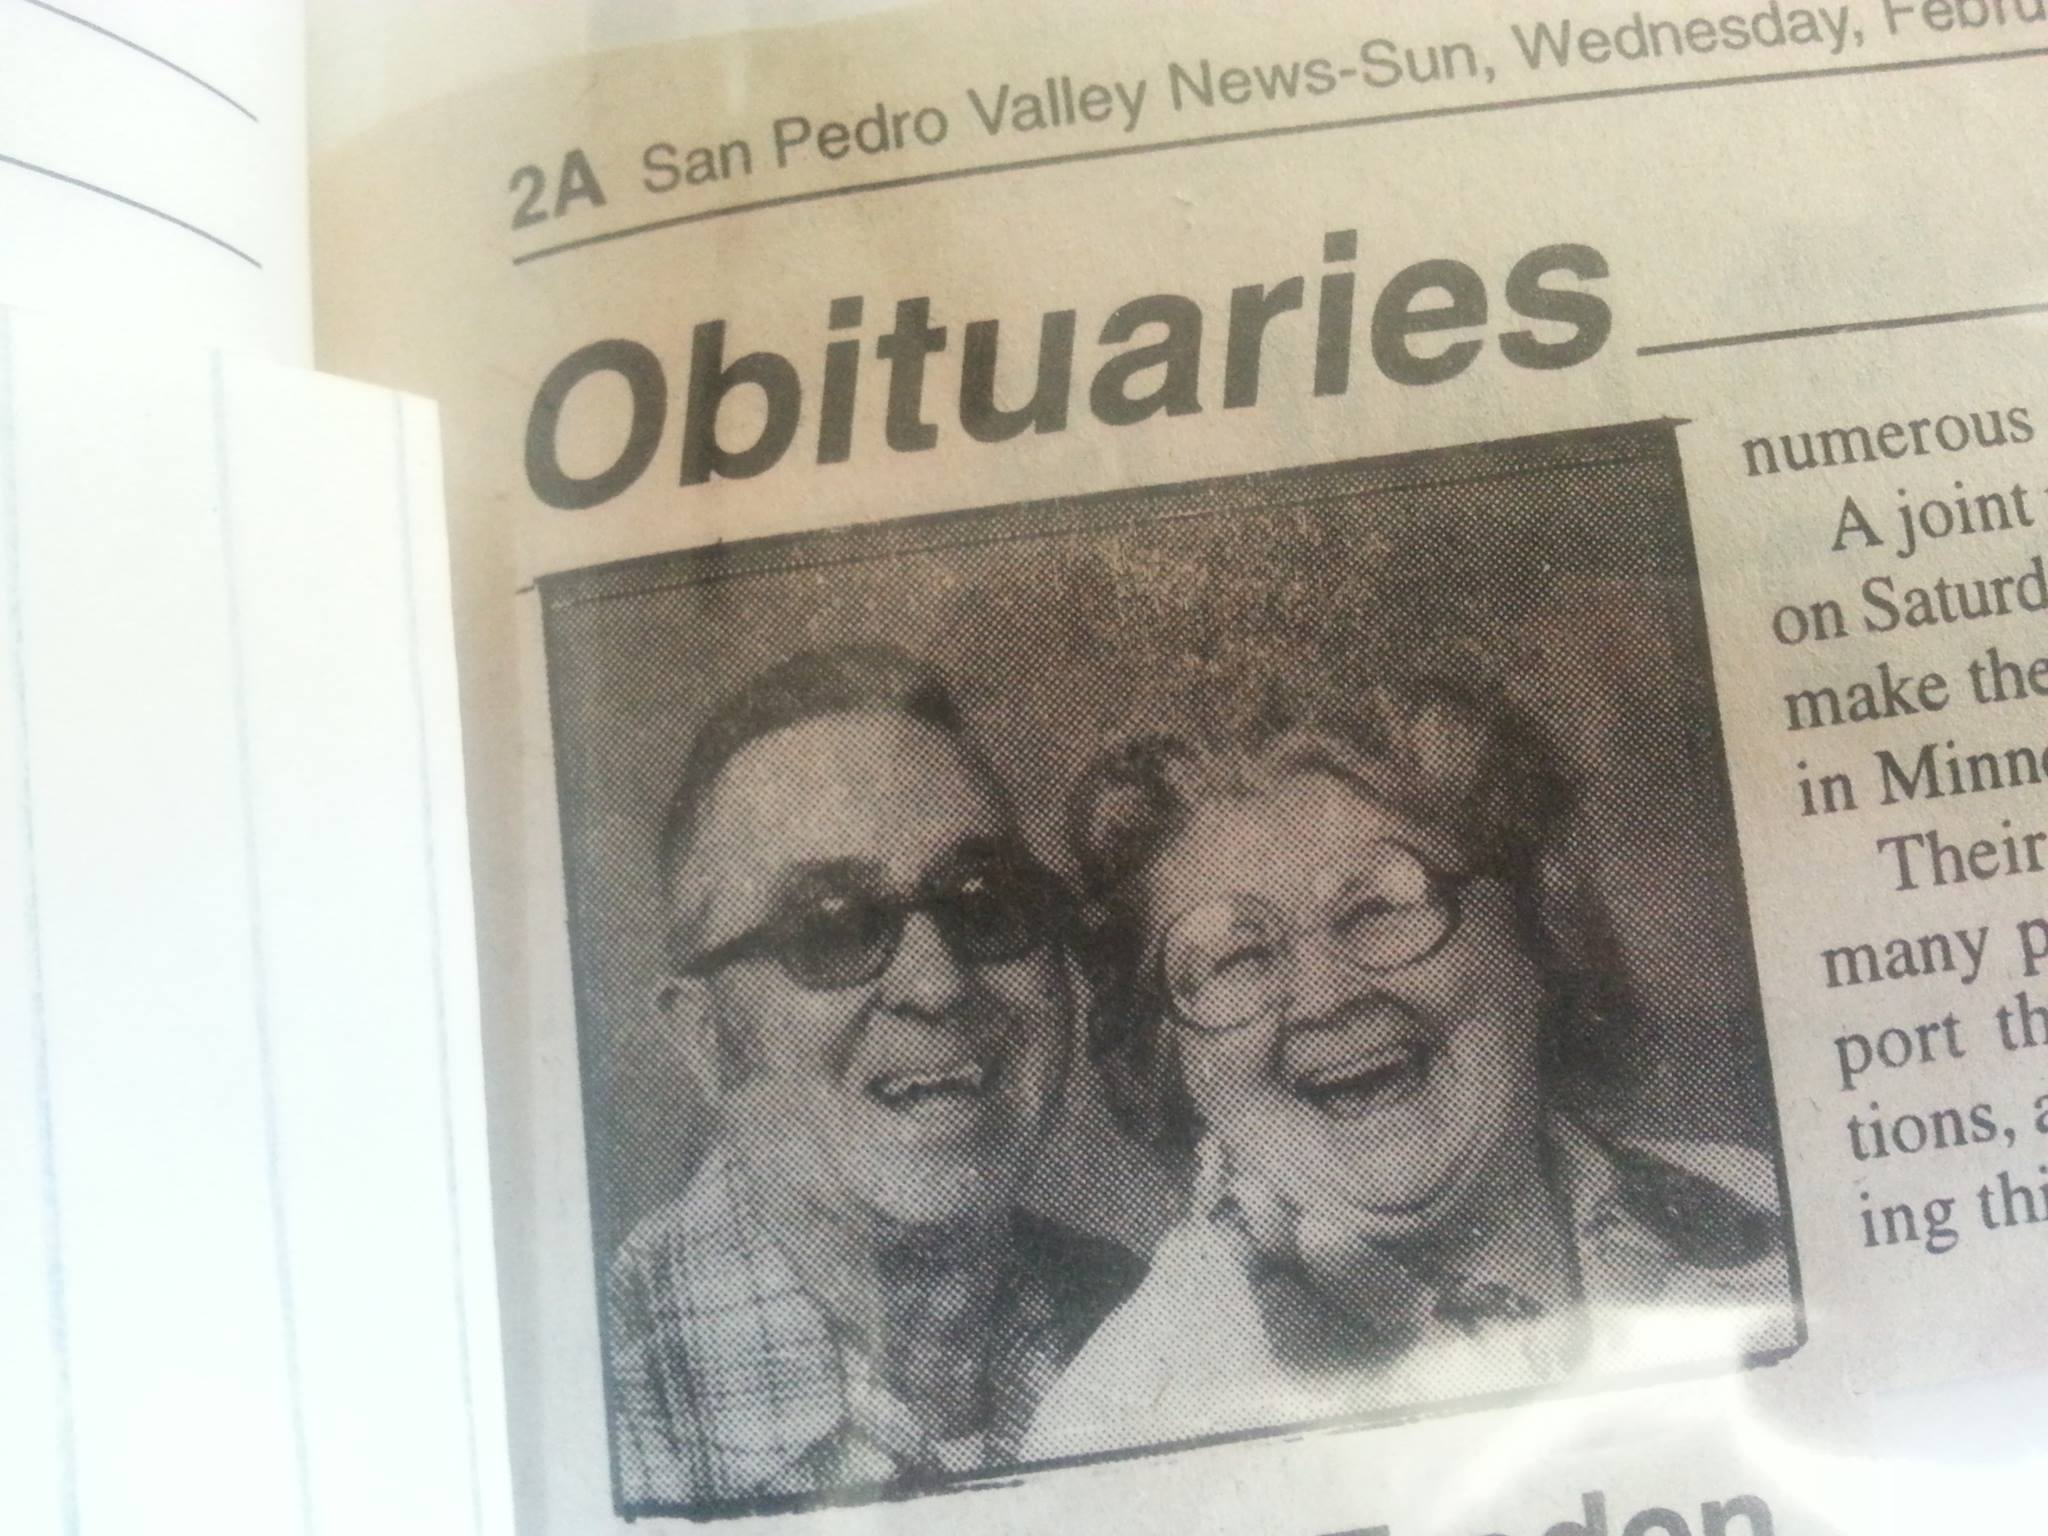 Obituary of Water Freden and Annamatilda Freden